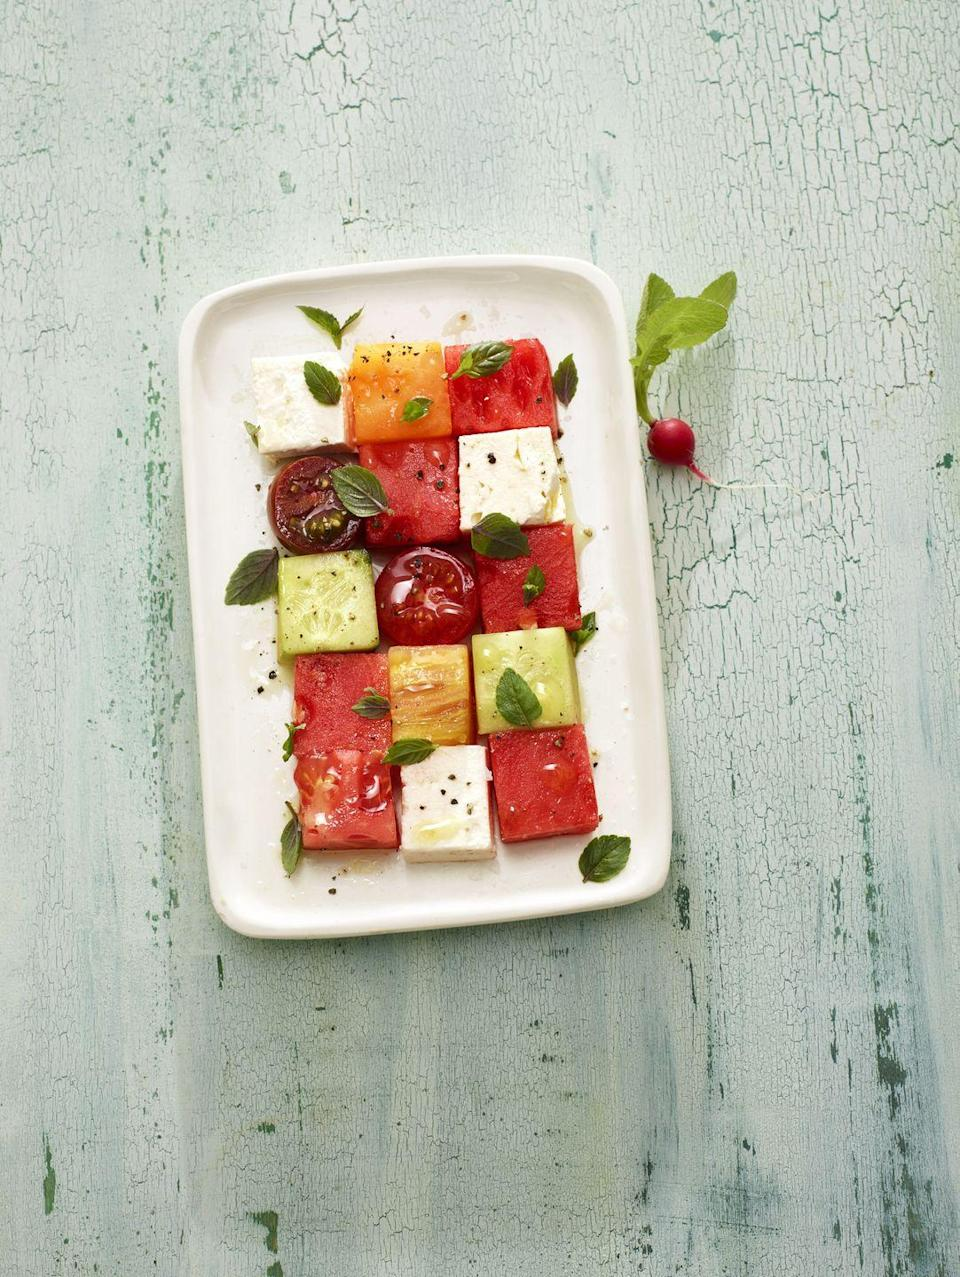 """<p>Bring some art to your backyard BBQ with this almost too-pretty-to-eat salad.</p><p><em><a href=""""https://www.goodhousekeeping.com/food-recipes/easy/a22577331/melon-mosaic-recipe/"""" rel=""""nofollow noopener"""" target=""""_blank"""" data-ylk=""""slk:Get the recipe for Melon Mosaic »"""" class=""""link rapid-noclick-resp"""">Get the recipe for Melon Mosaic »</a></em></p>"""